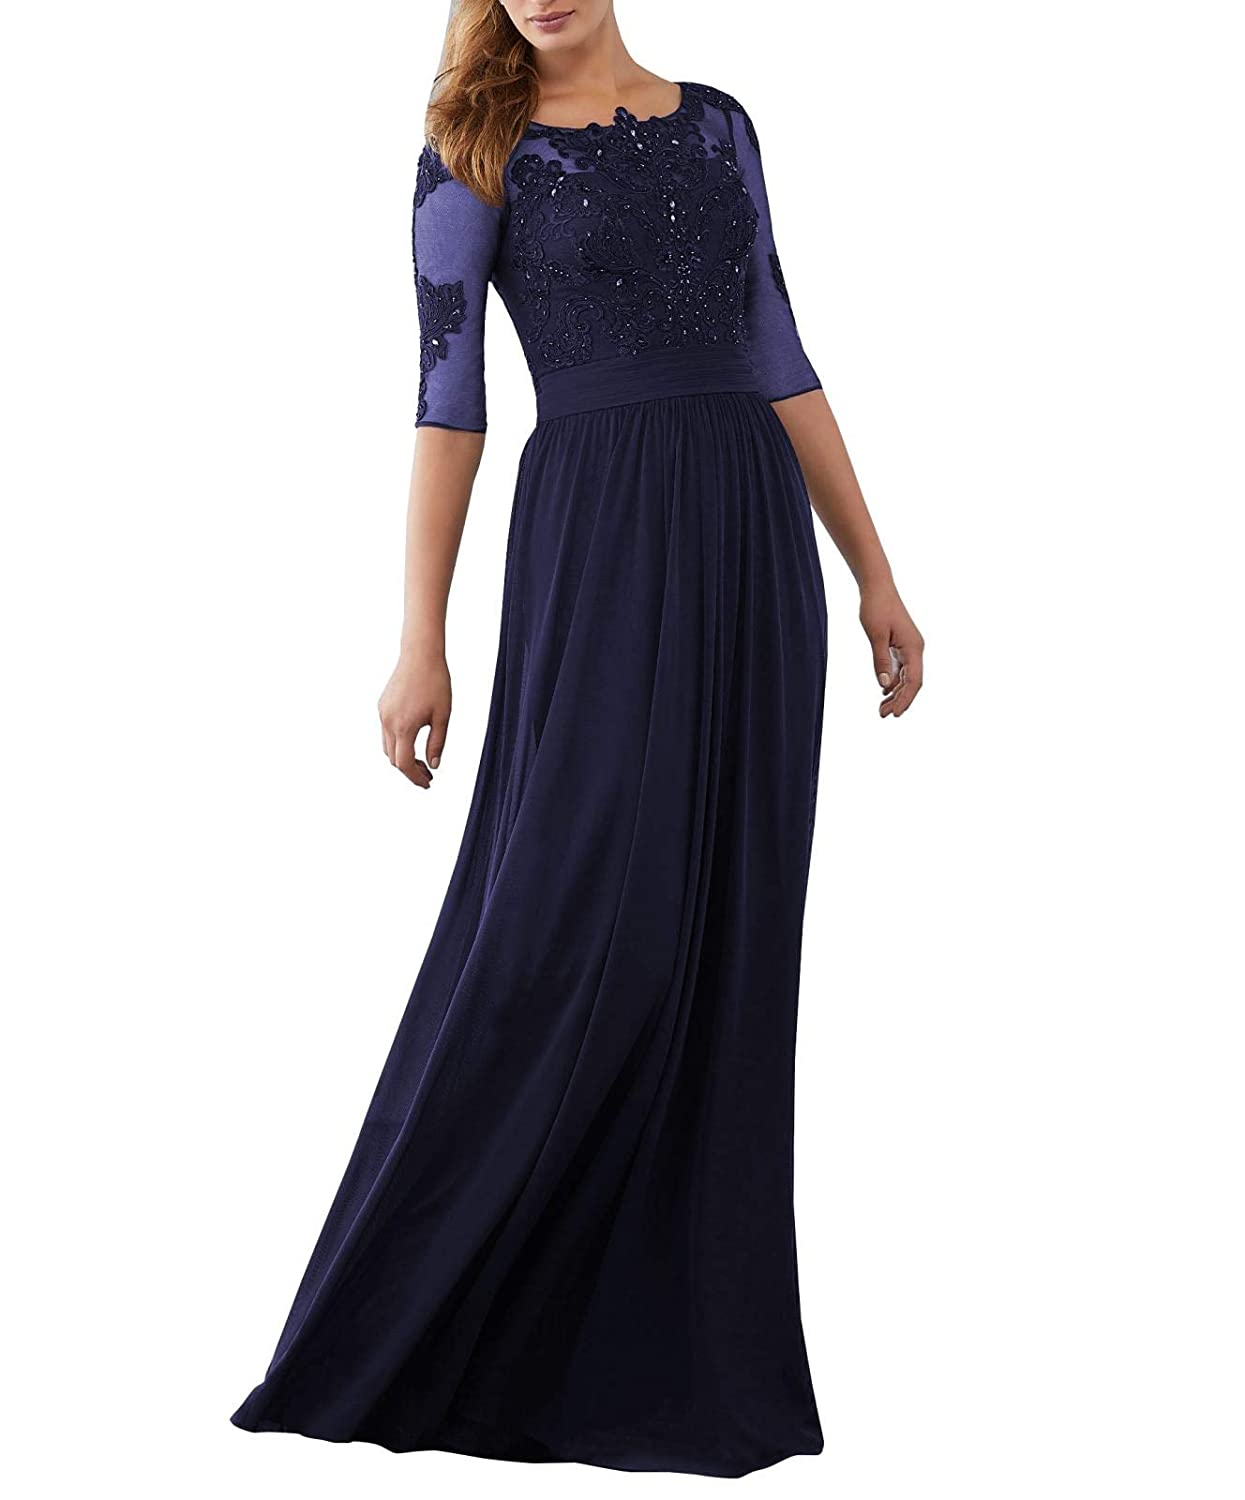 bluee Wanshaqin Women's Aline Illusion Lace Appliques Evening Gown Formal Wedding Party Dress for Brides with Pleated Empire Waist